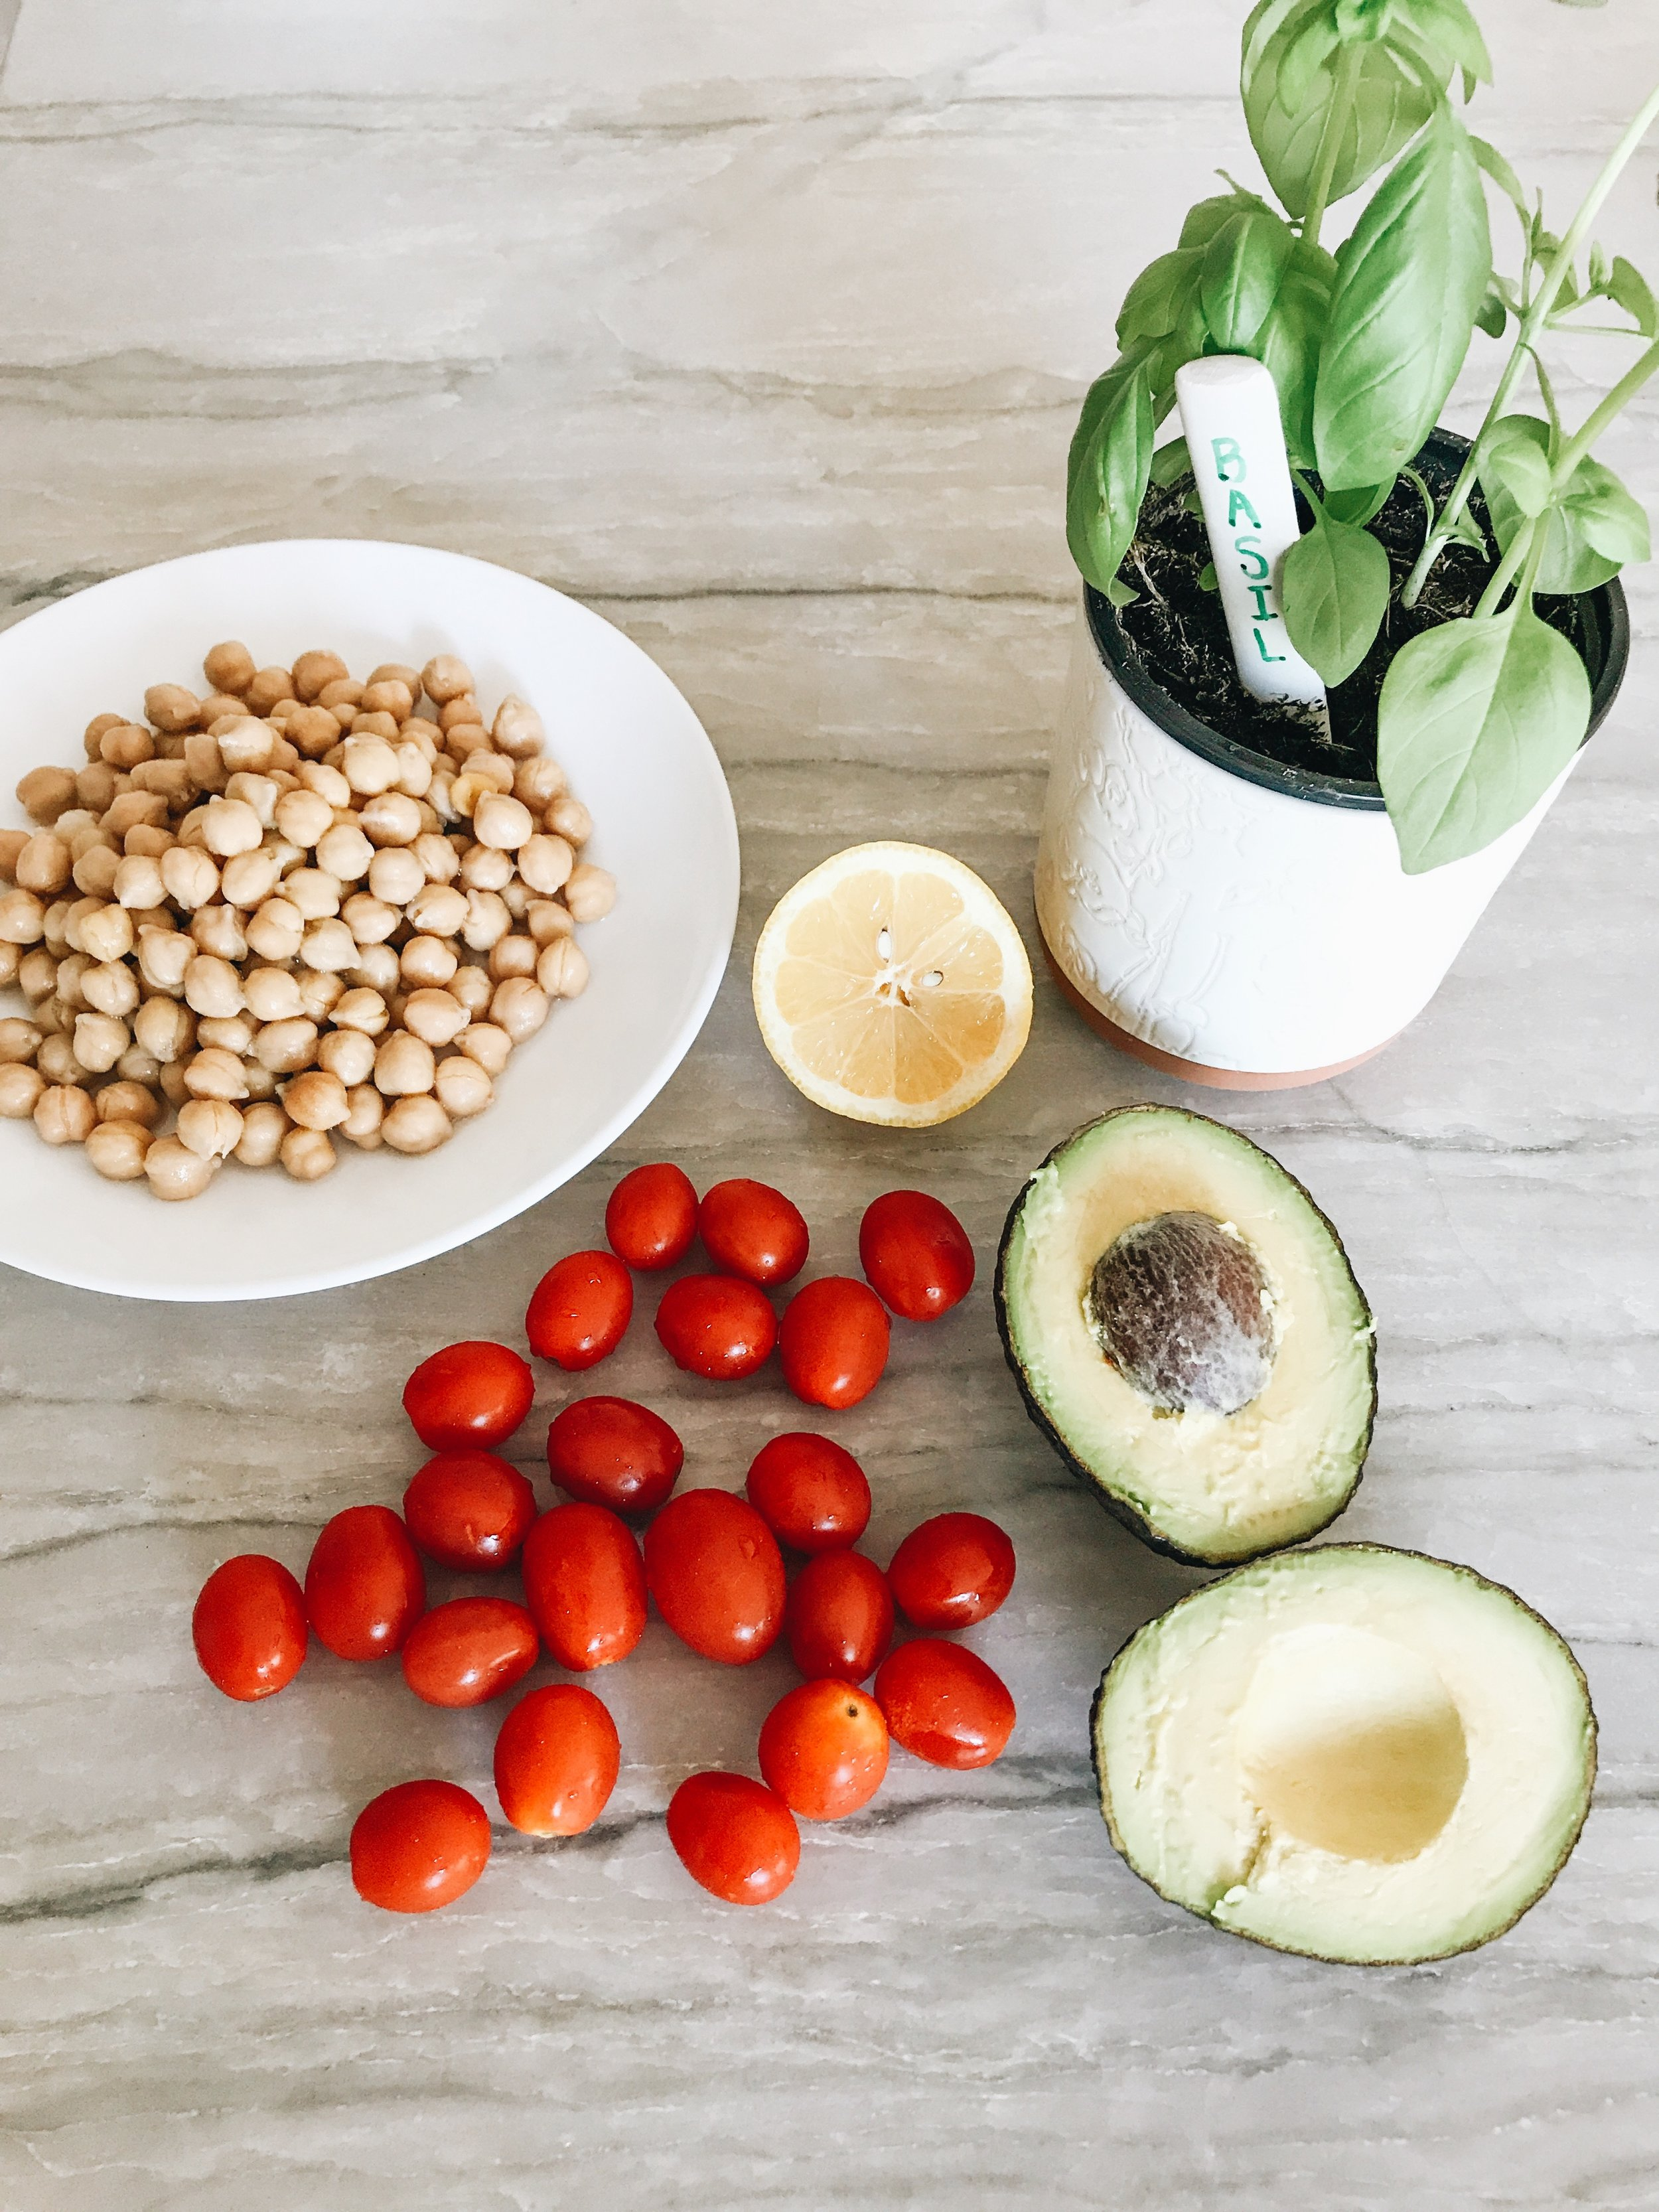 Tomato, Basil, Chickpea, And Avocado Salad with Sparkling Water with Lemon and Blueberries